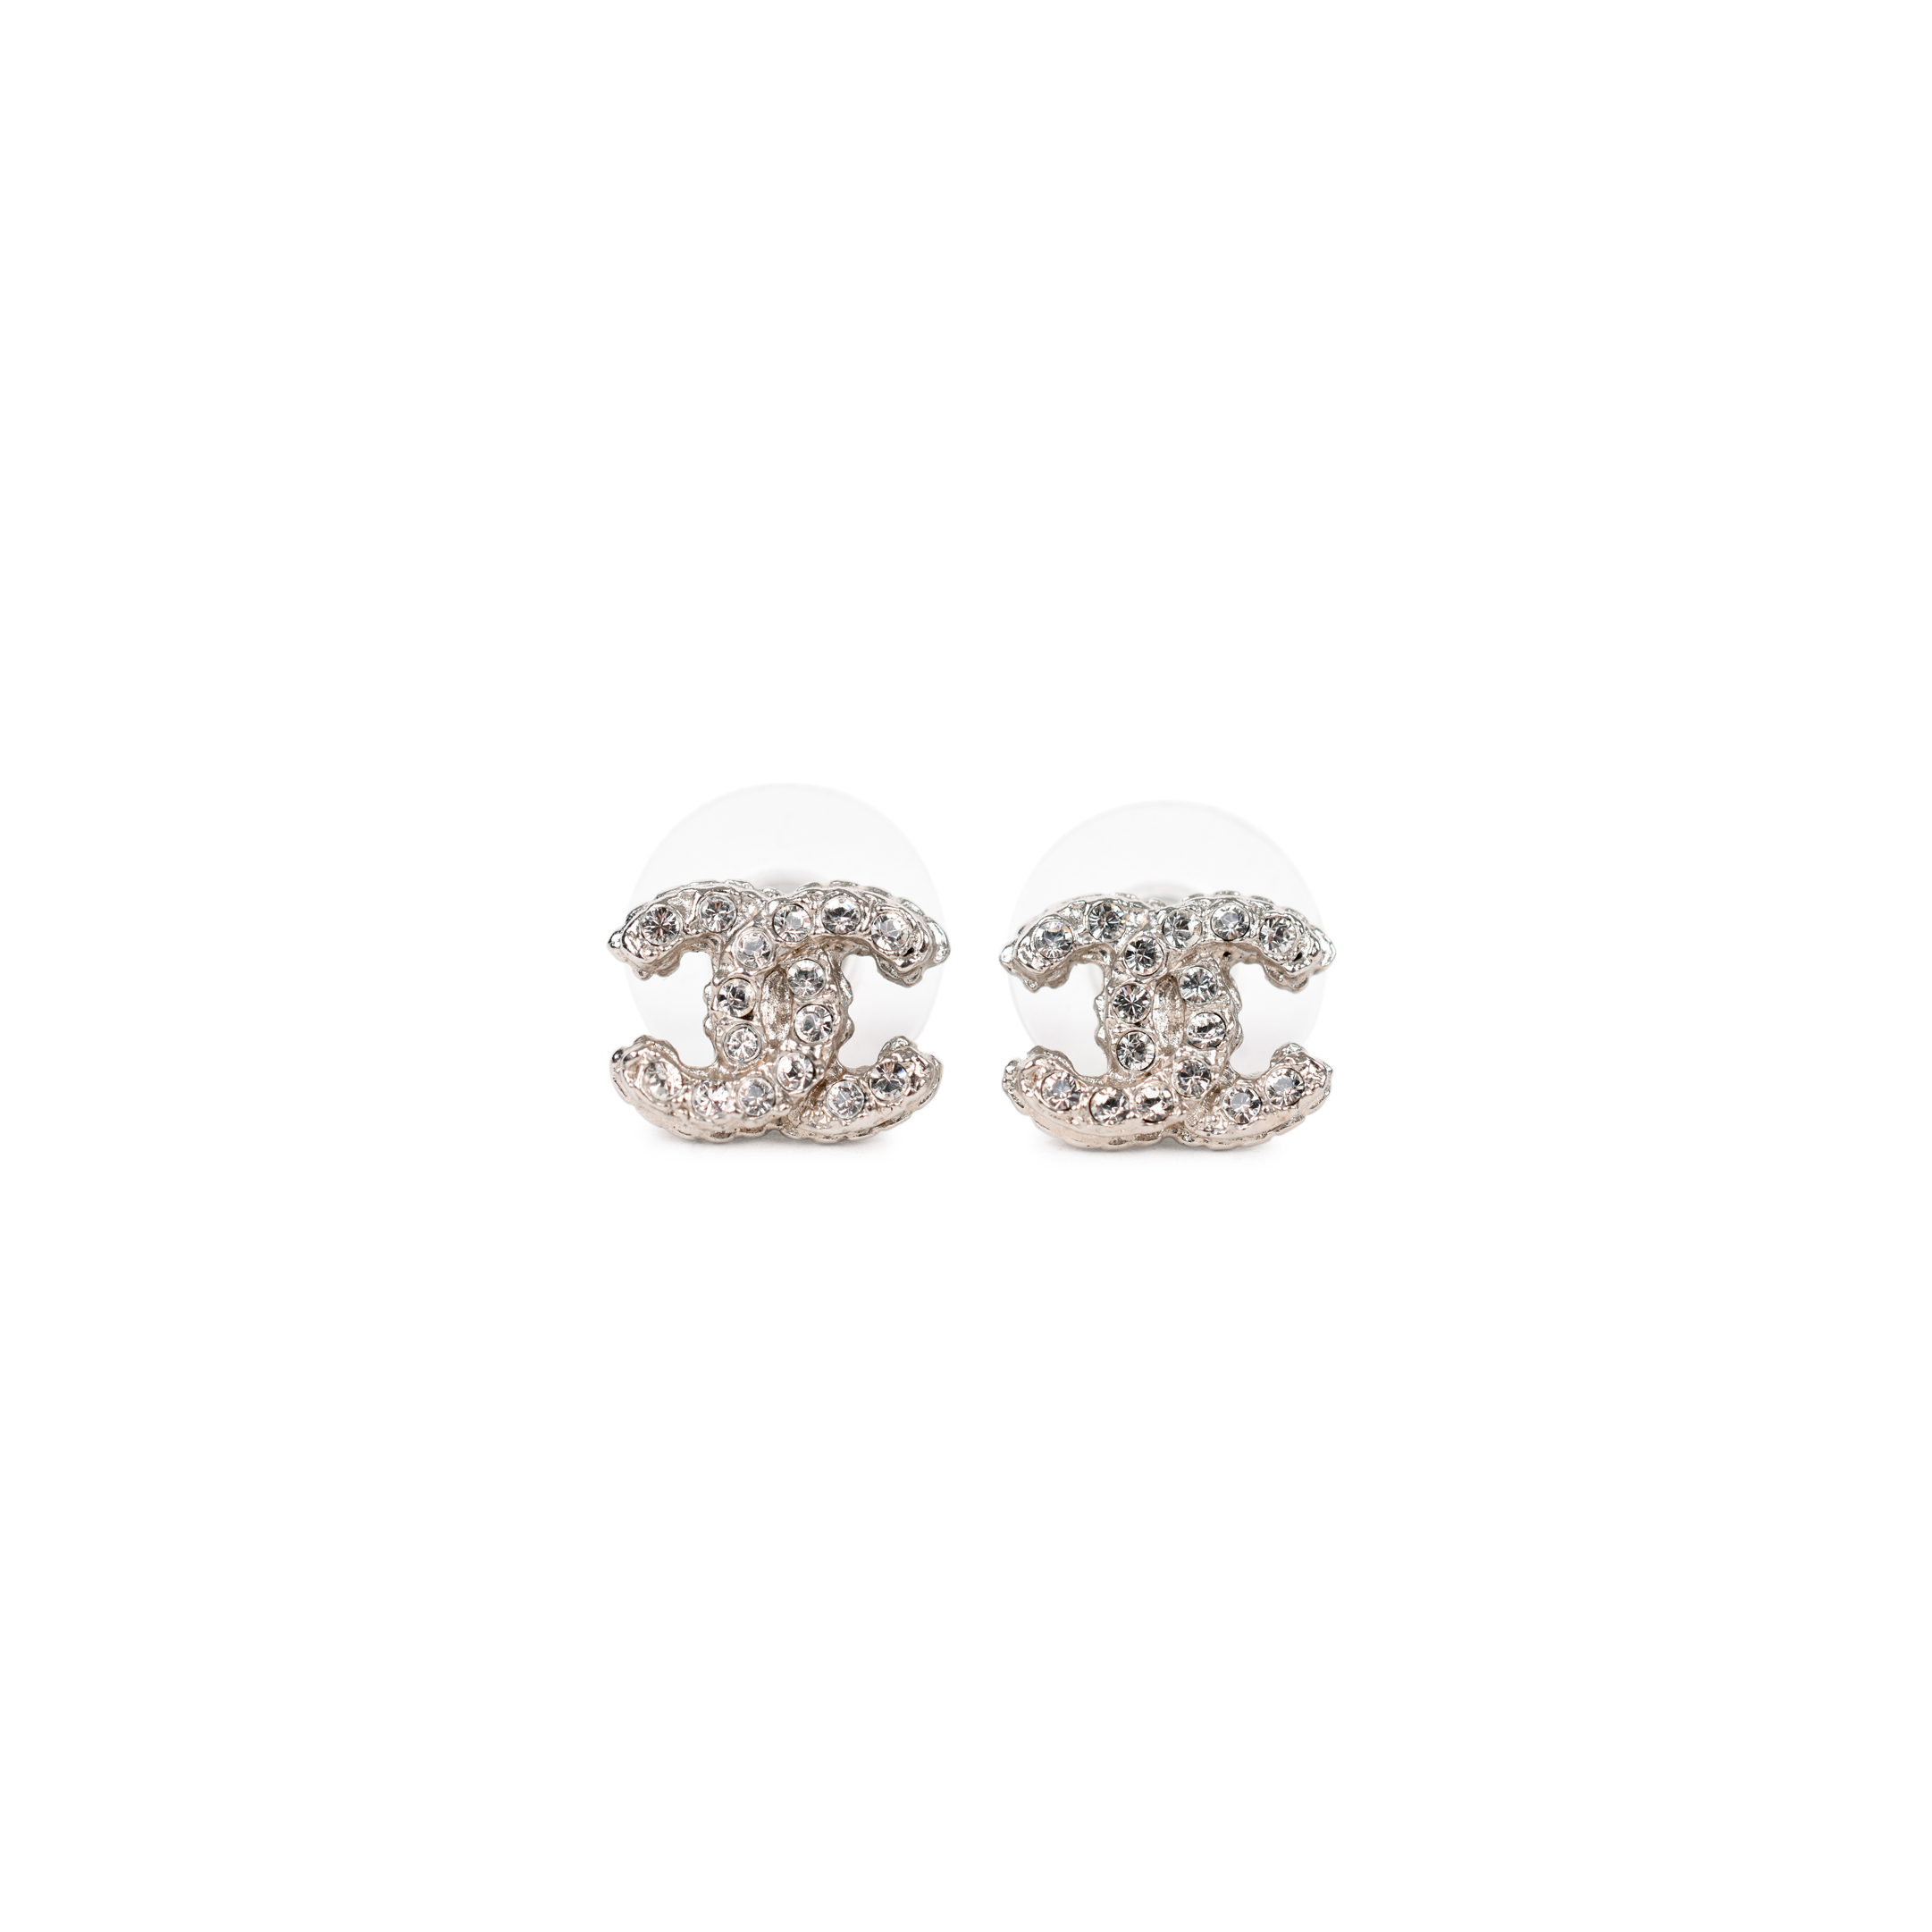 Authentic Pre Owned Chanel Logo Stud Earrings Pss 214 00037 The Fifth Collection